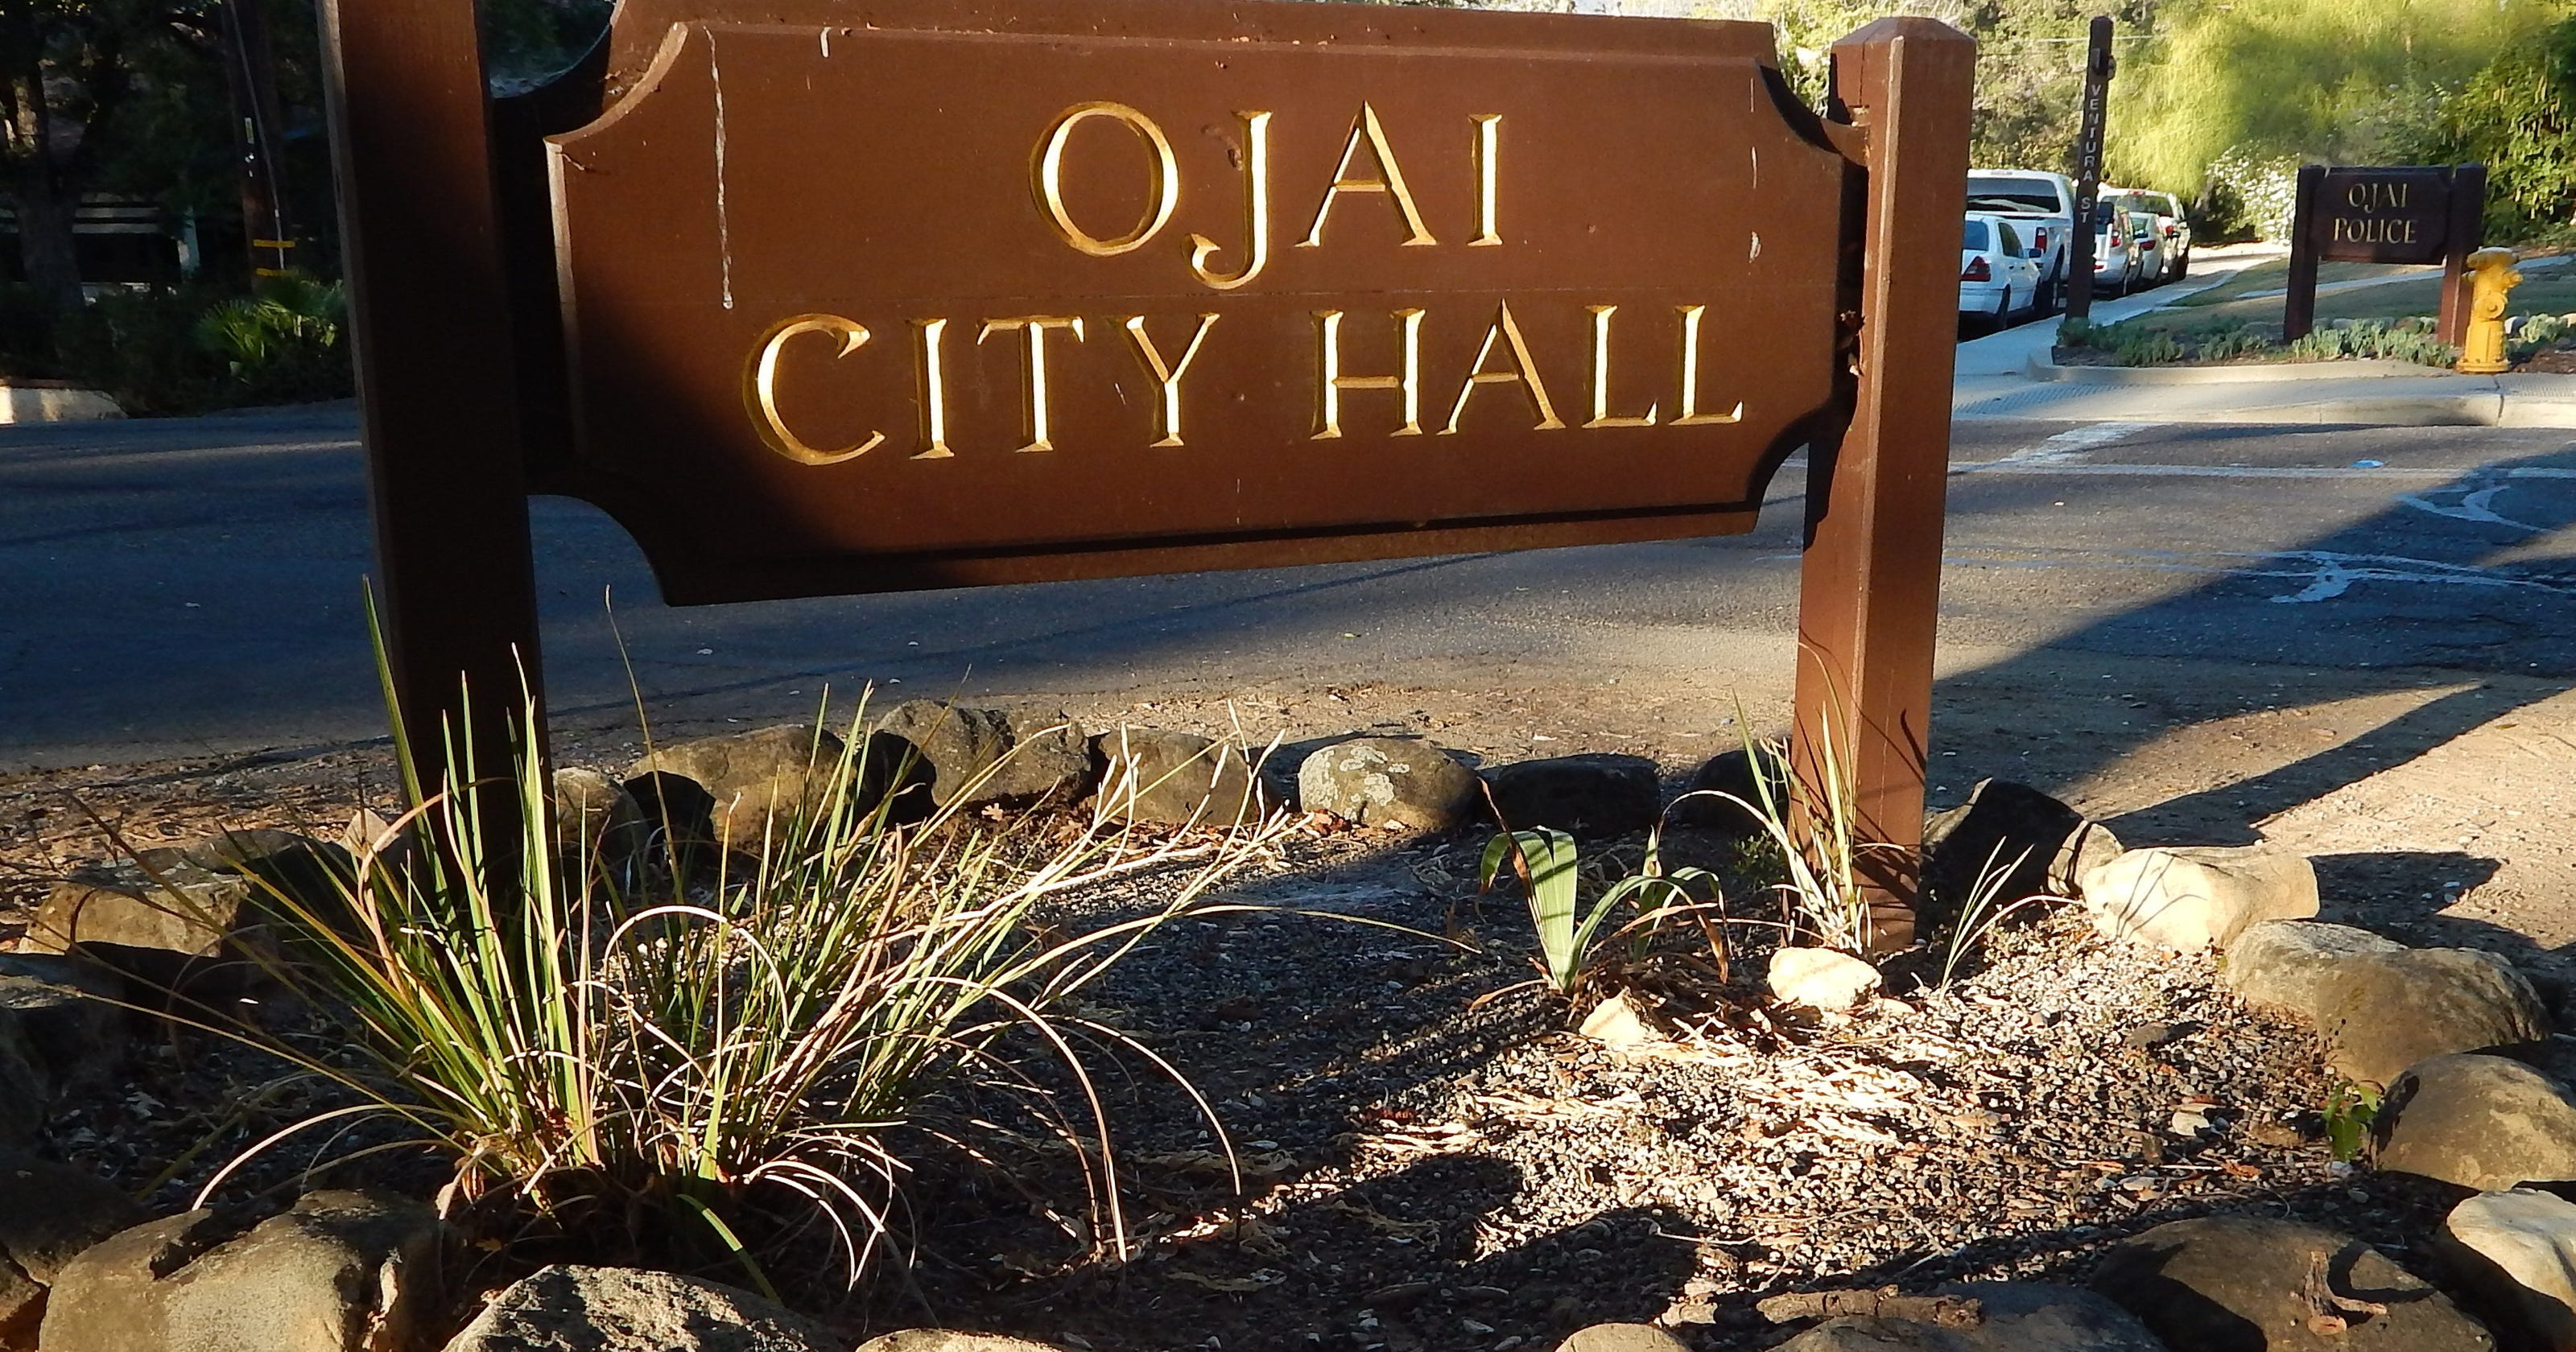 Ojai and climate change